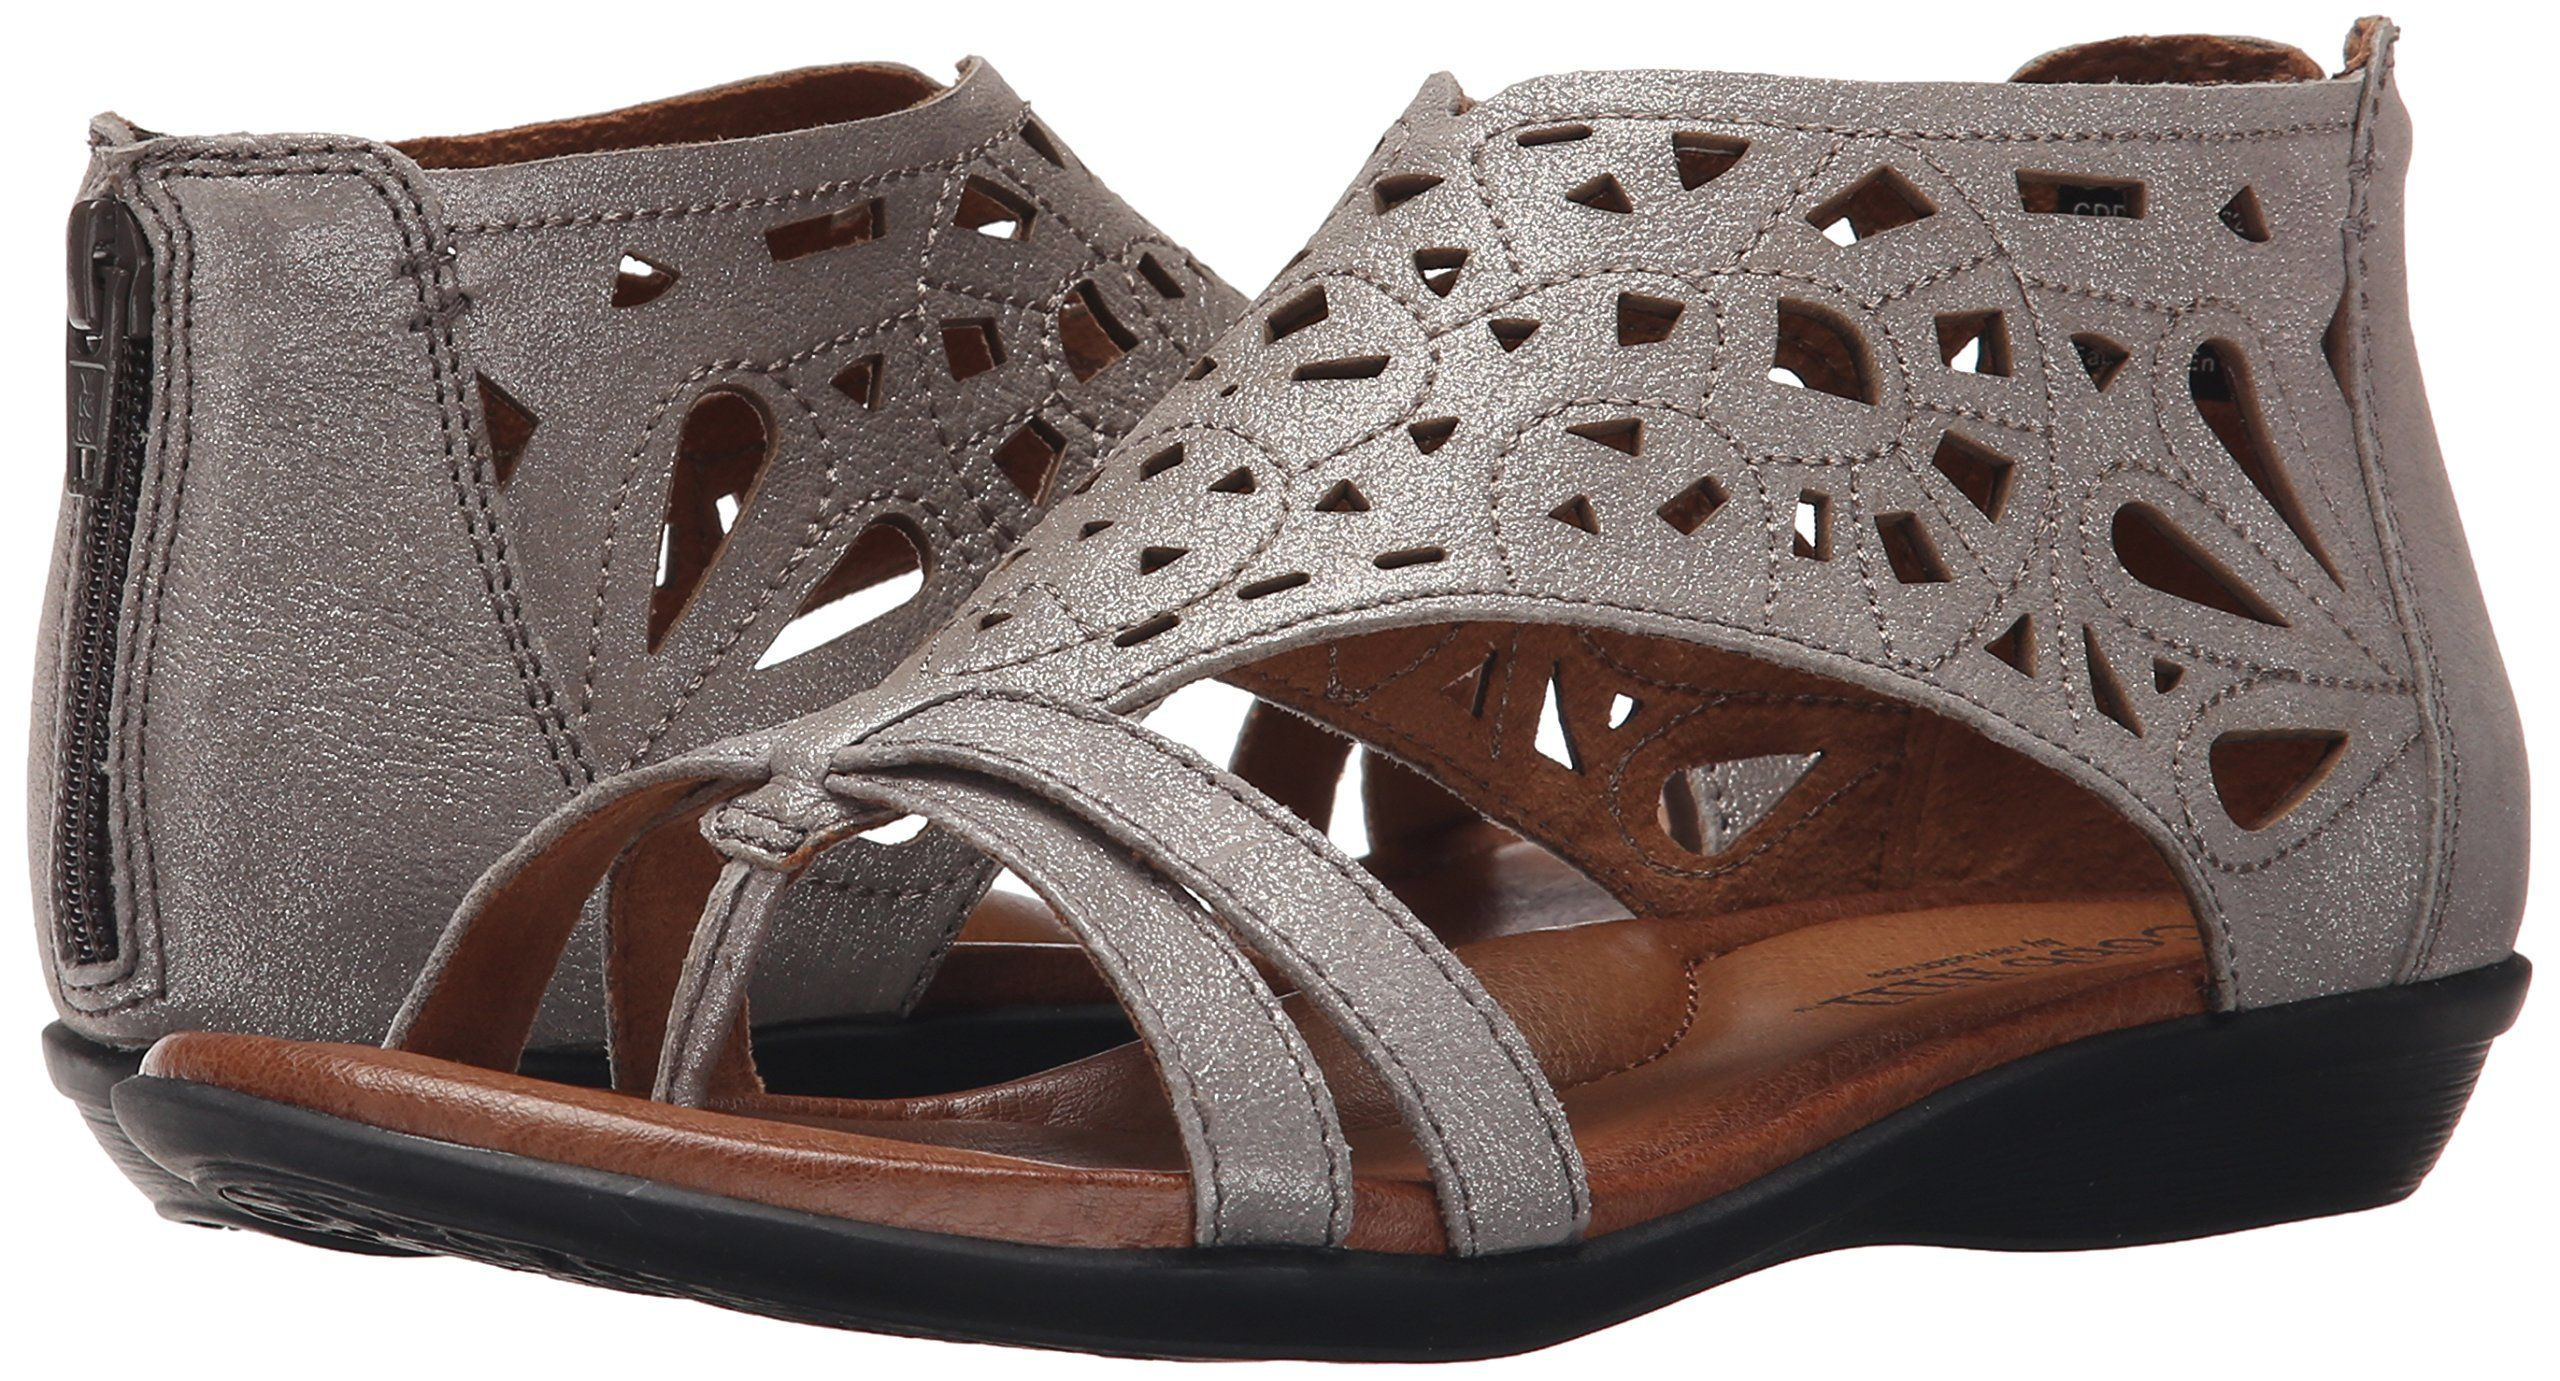 4b4eb9a55627 Cobb Hill Rockport Womens JordanCH Flat Sandal Pewter 10 M US     Read more  at the image link.(It is Amazon affiliate link)  WomenSandalsIdeas